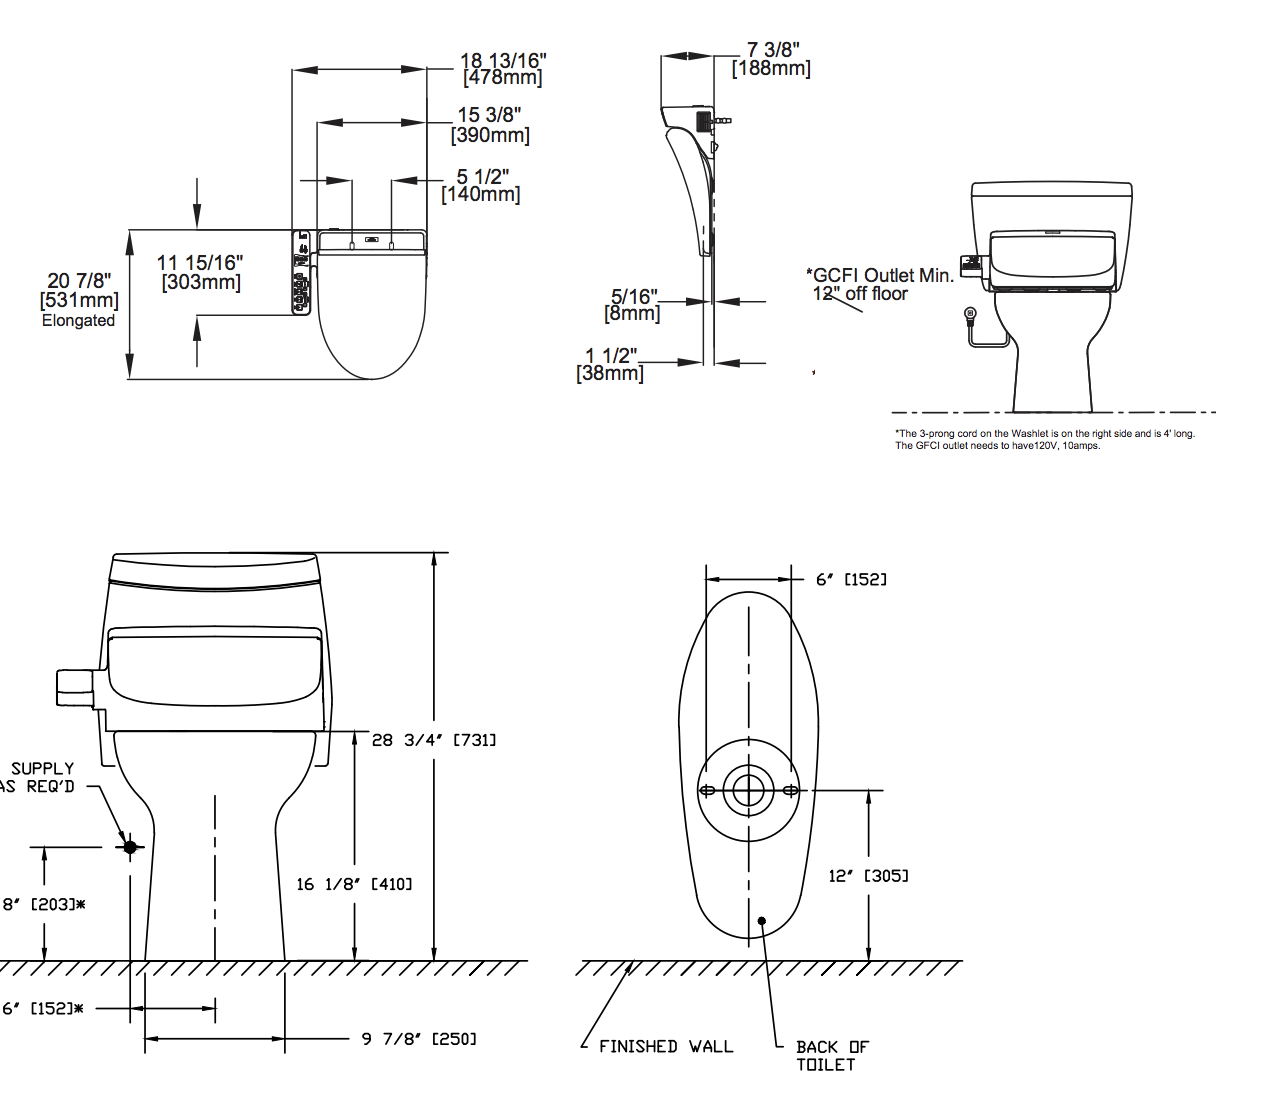 ultramax-ii-1g-washlet-c100-one-piece-toilet-1.0-gpf-diagram-2.png